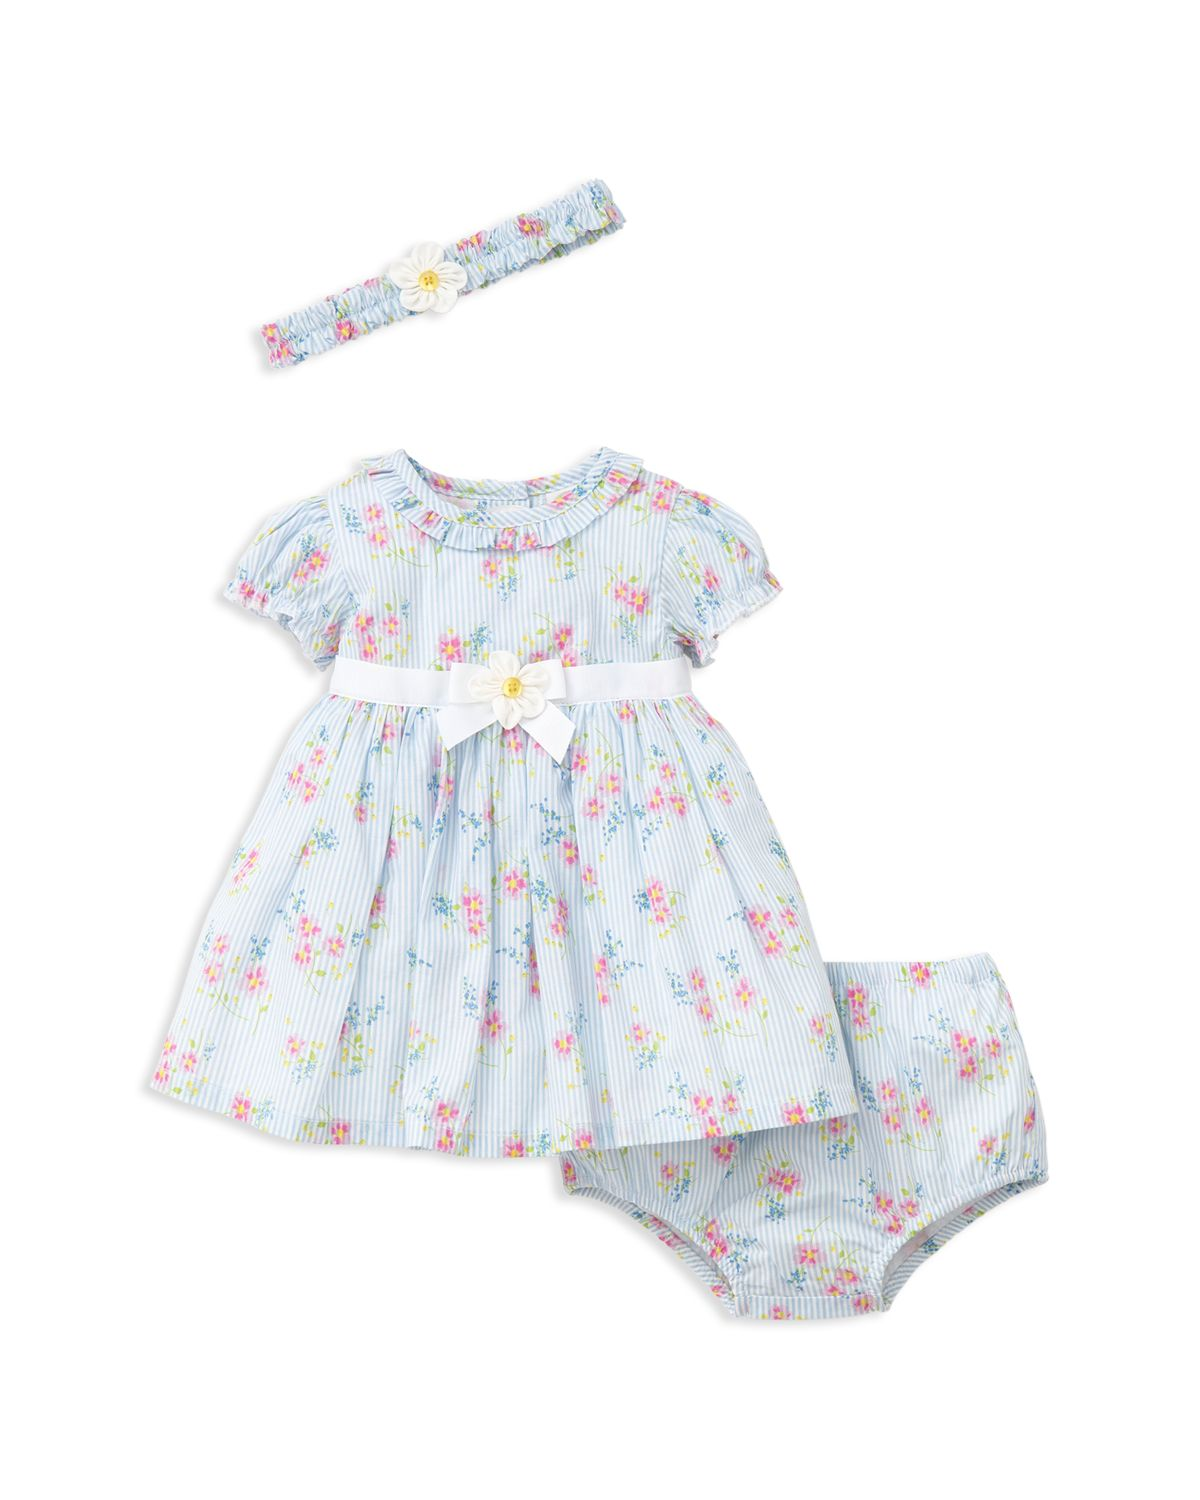 Girls' Springtime Dress, Romper & Headband Set   Baby by Little Me